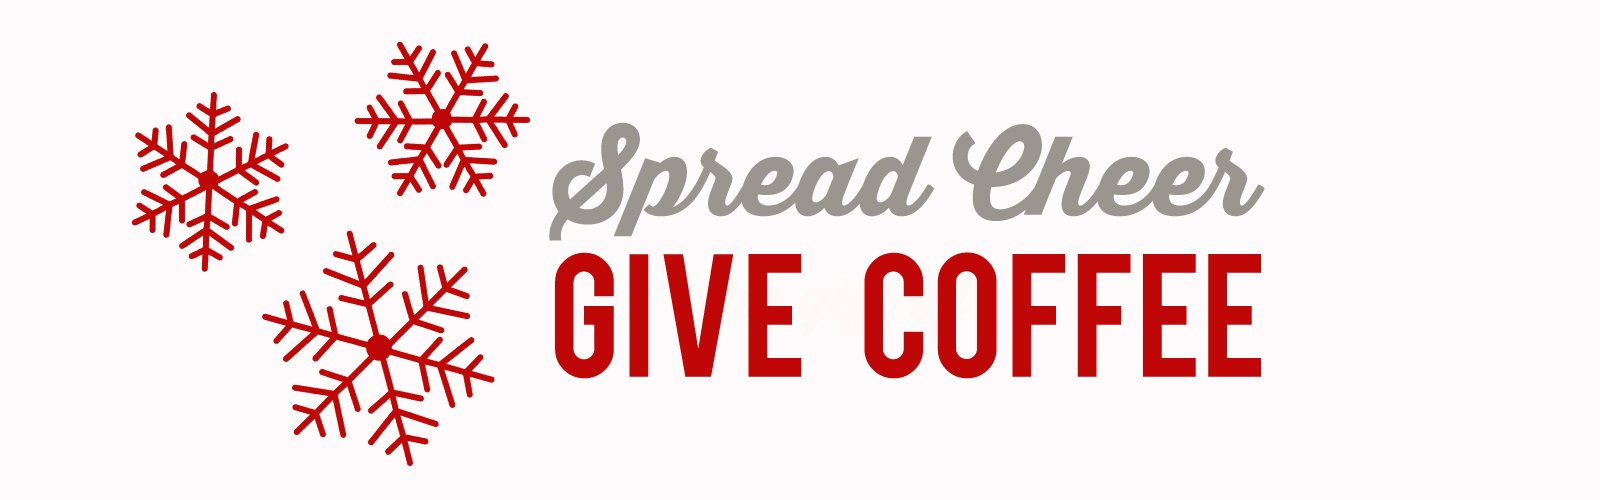 give-the-gift-of-coffee_rev